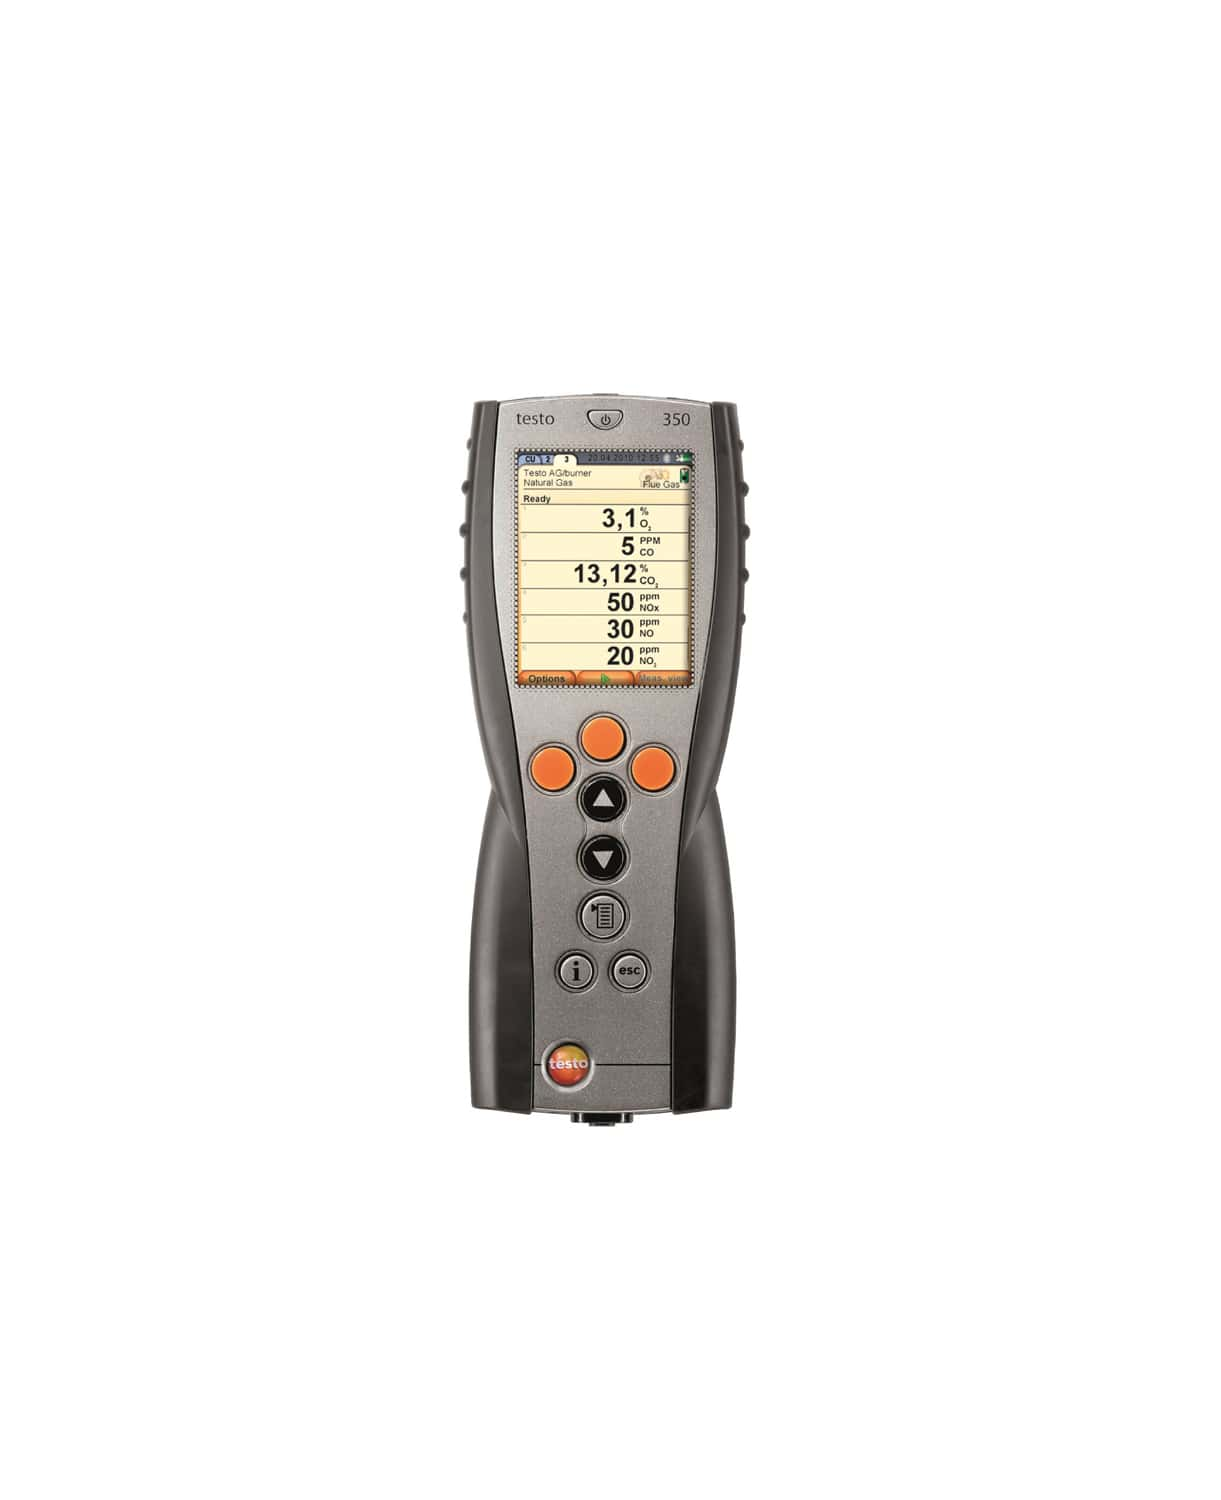 testo 350 - Control Unit for exhaust gas analysis systems